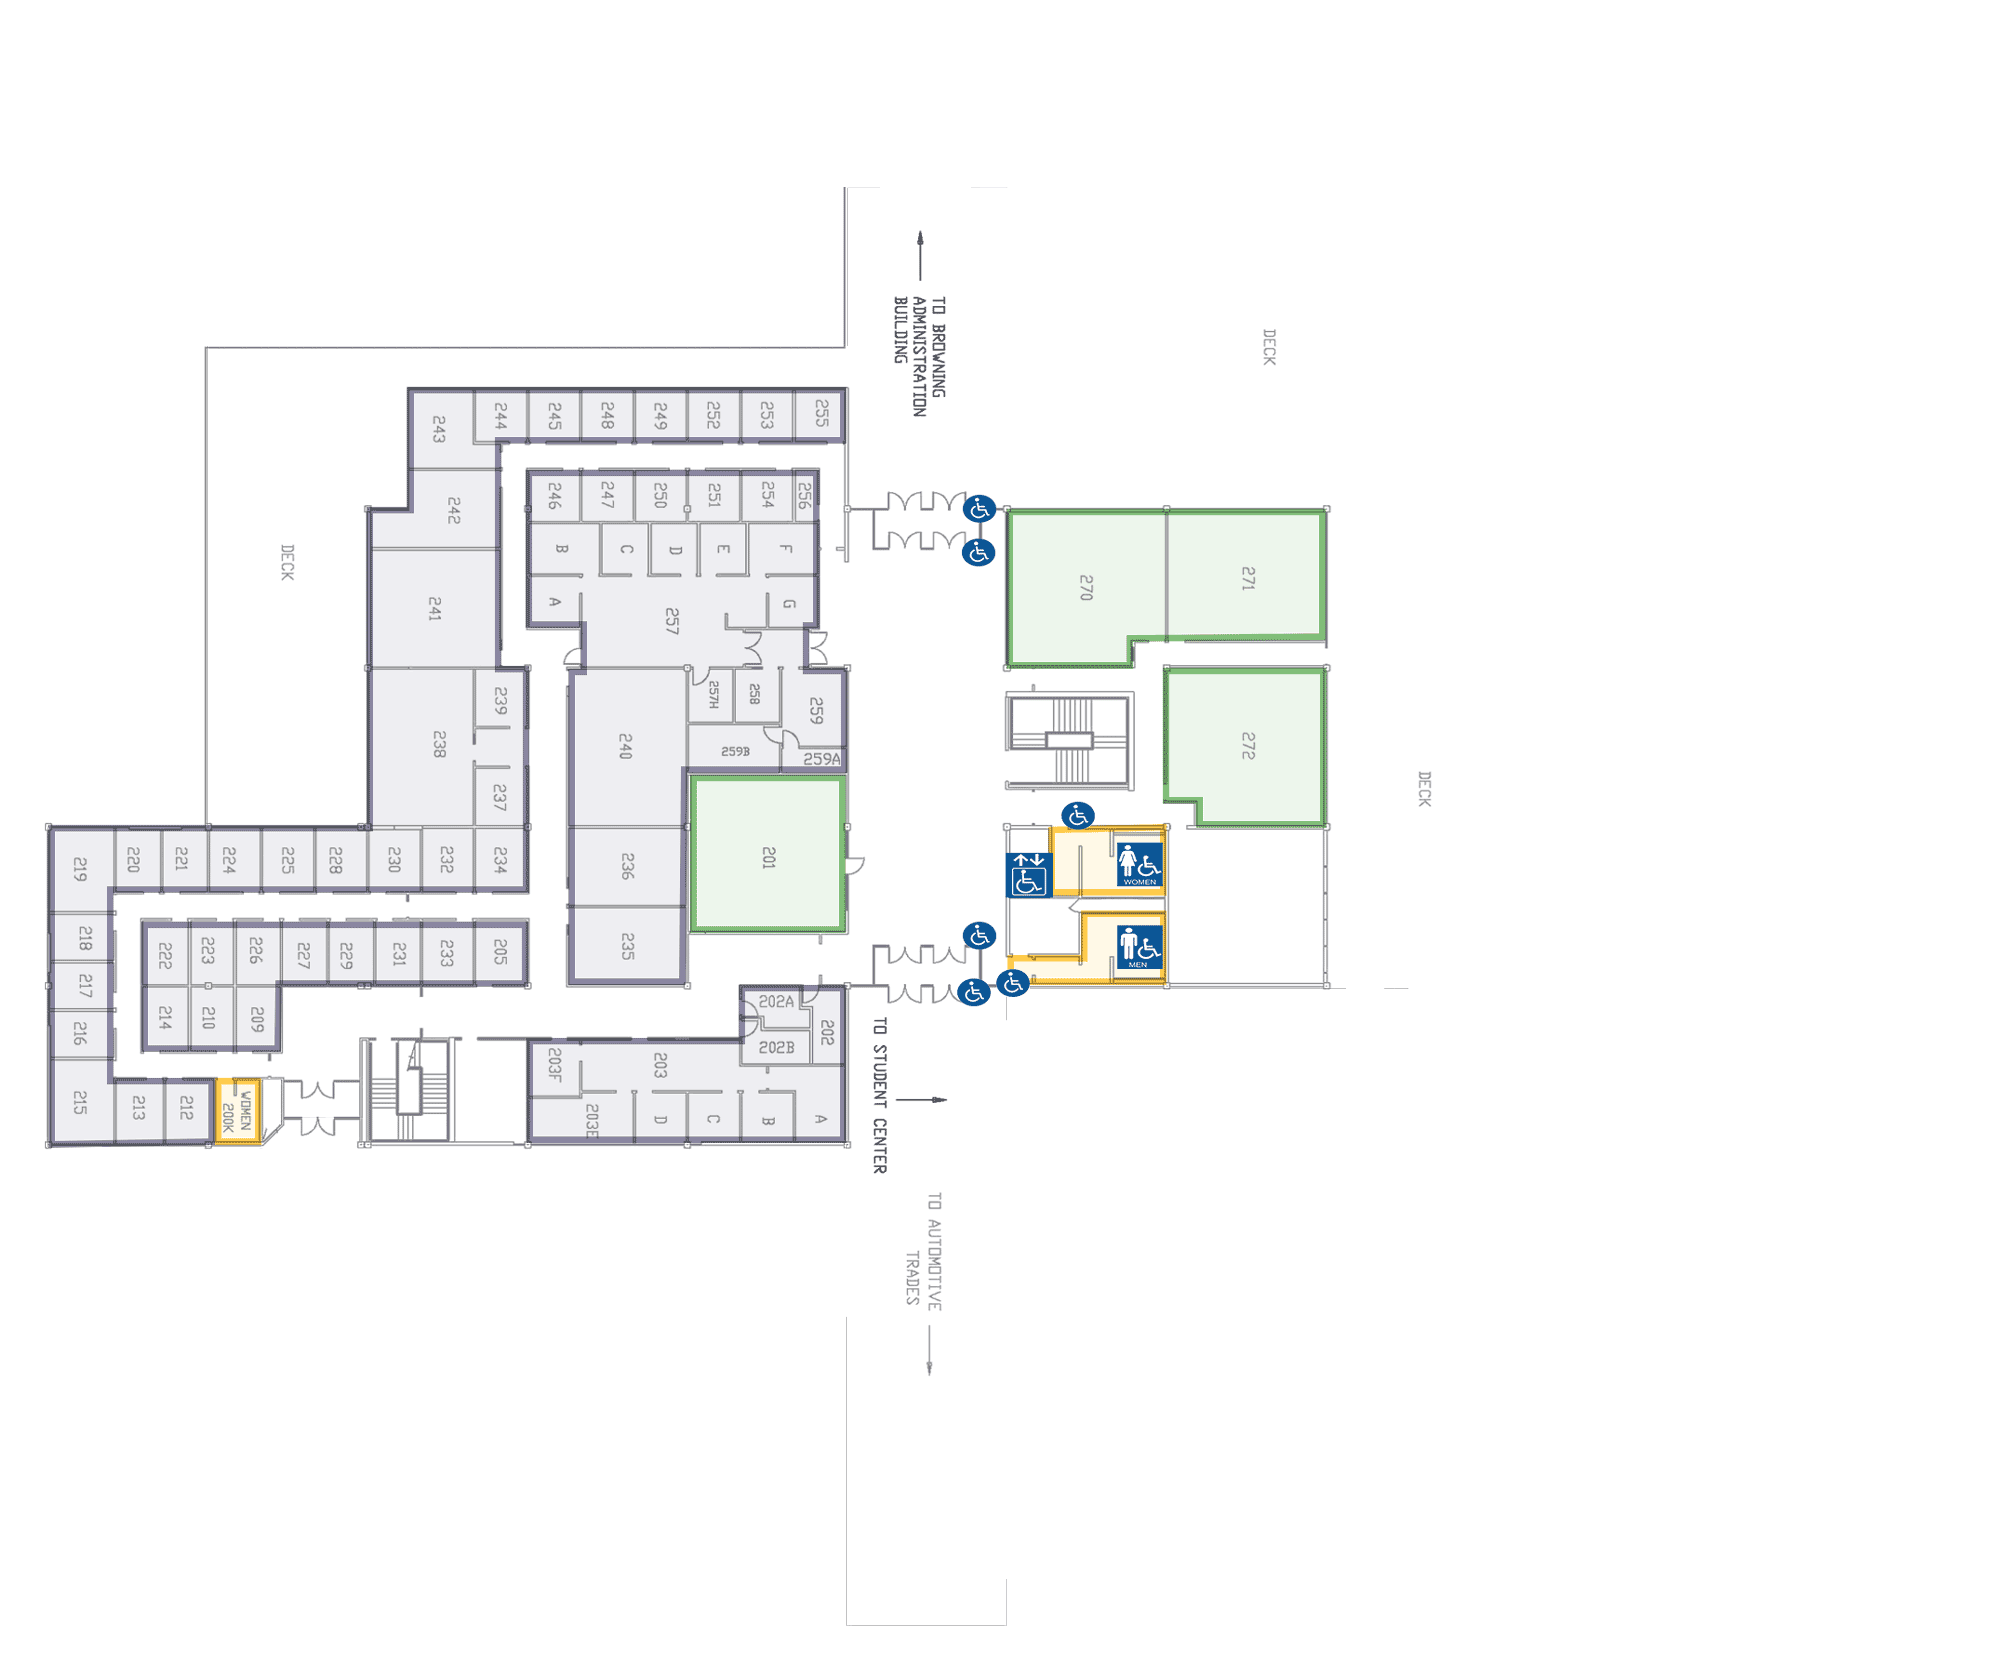 Woodbury Business Building Level 2. This level contains: outside push button door access, accessible seating in auditorums, push button access to accessible restrooms.